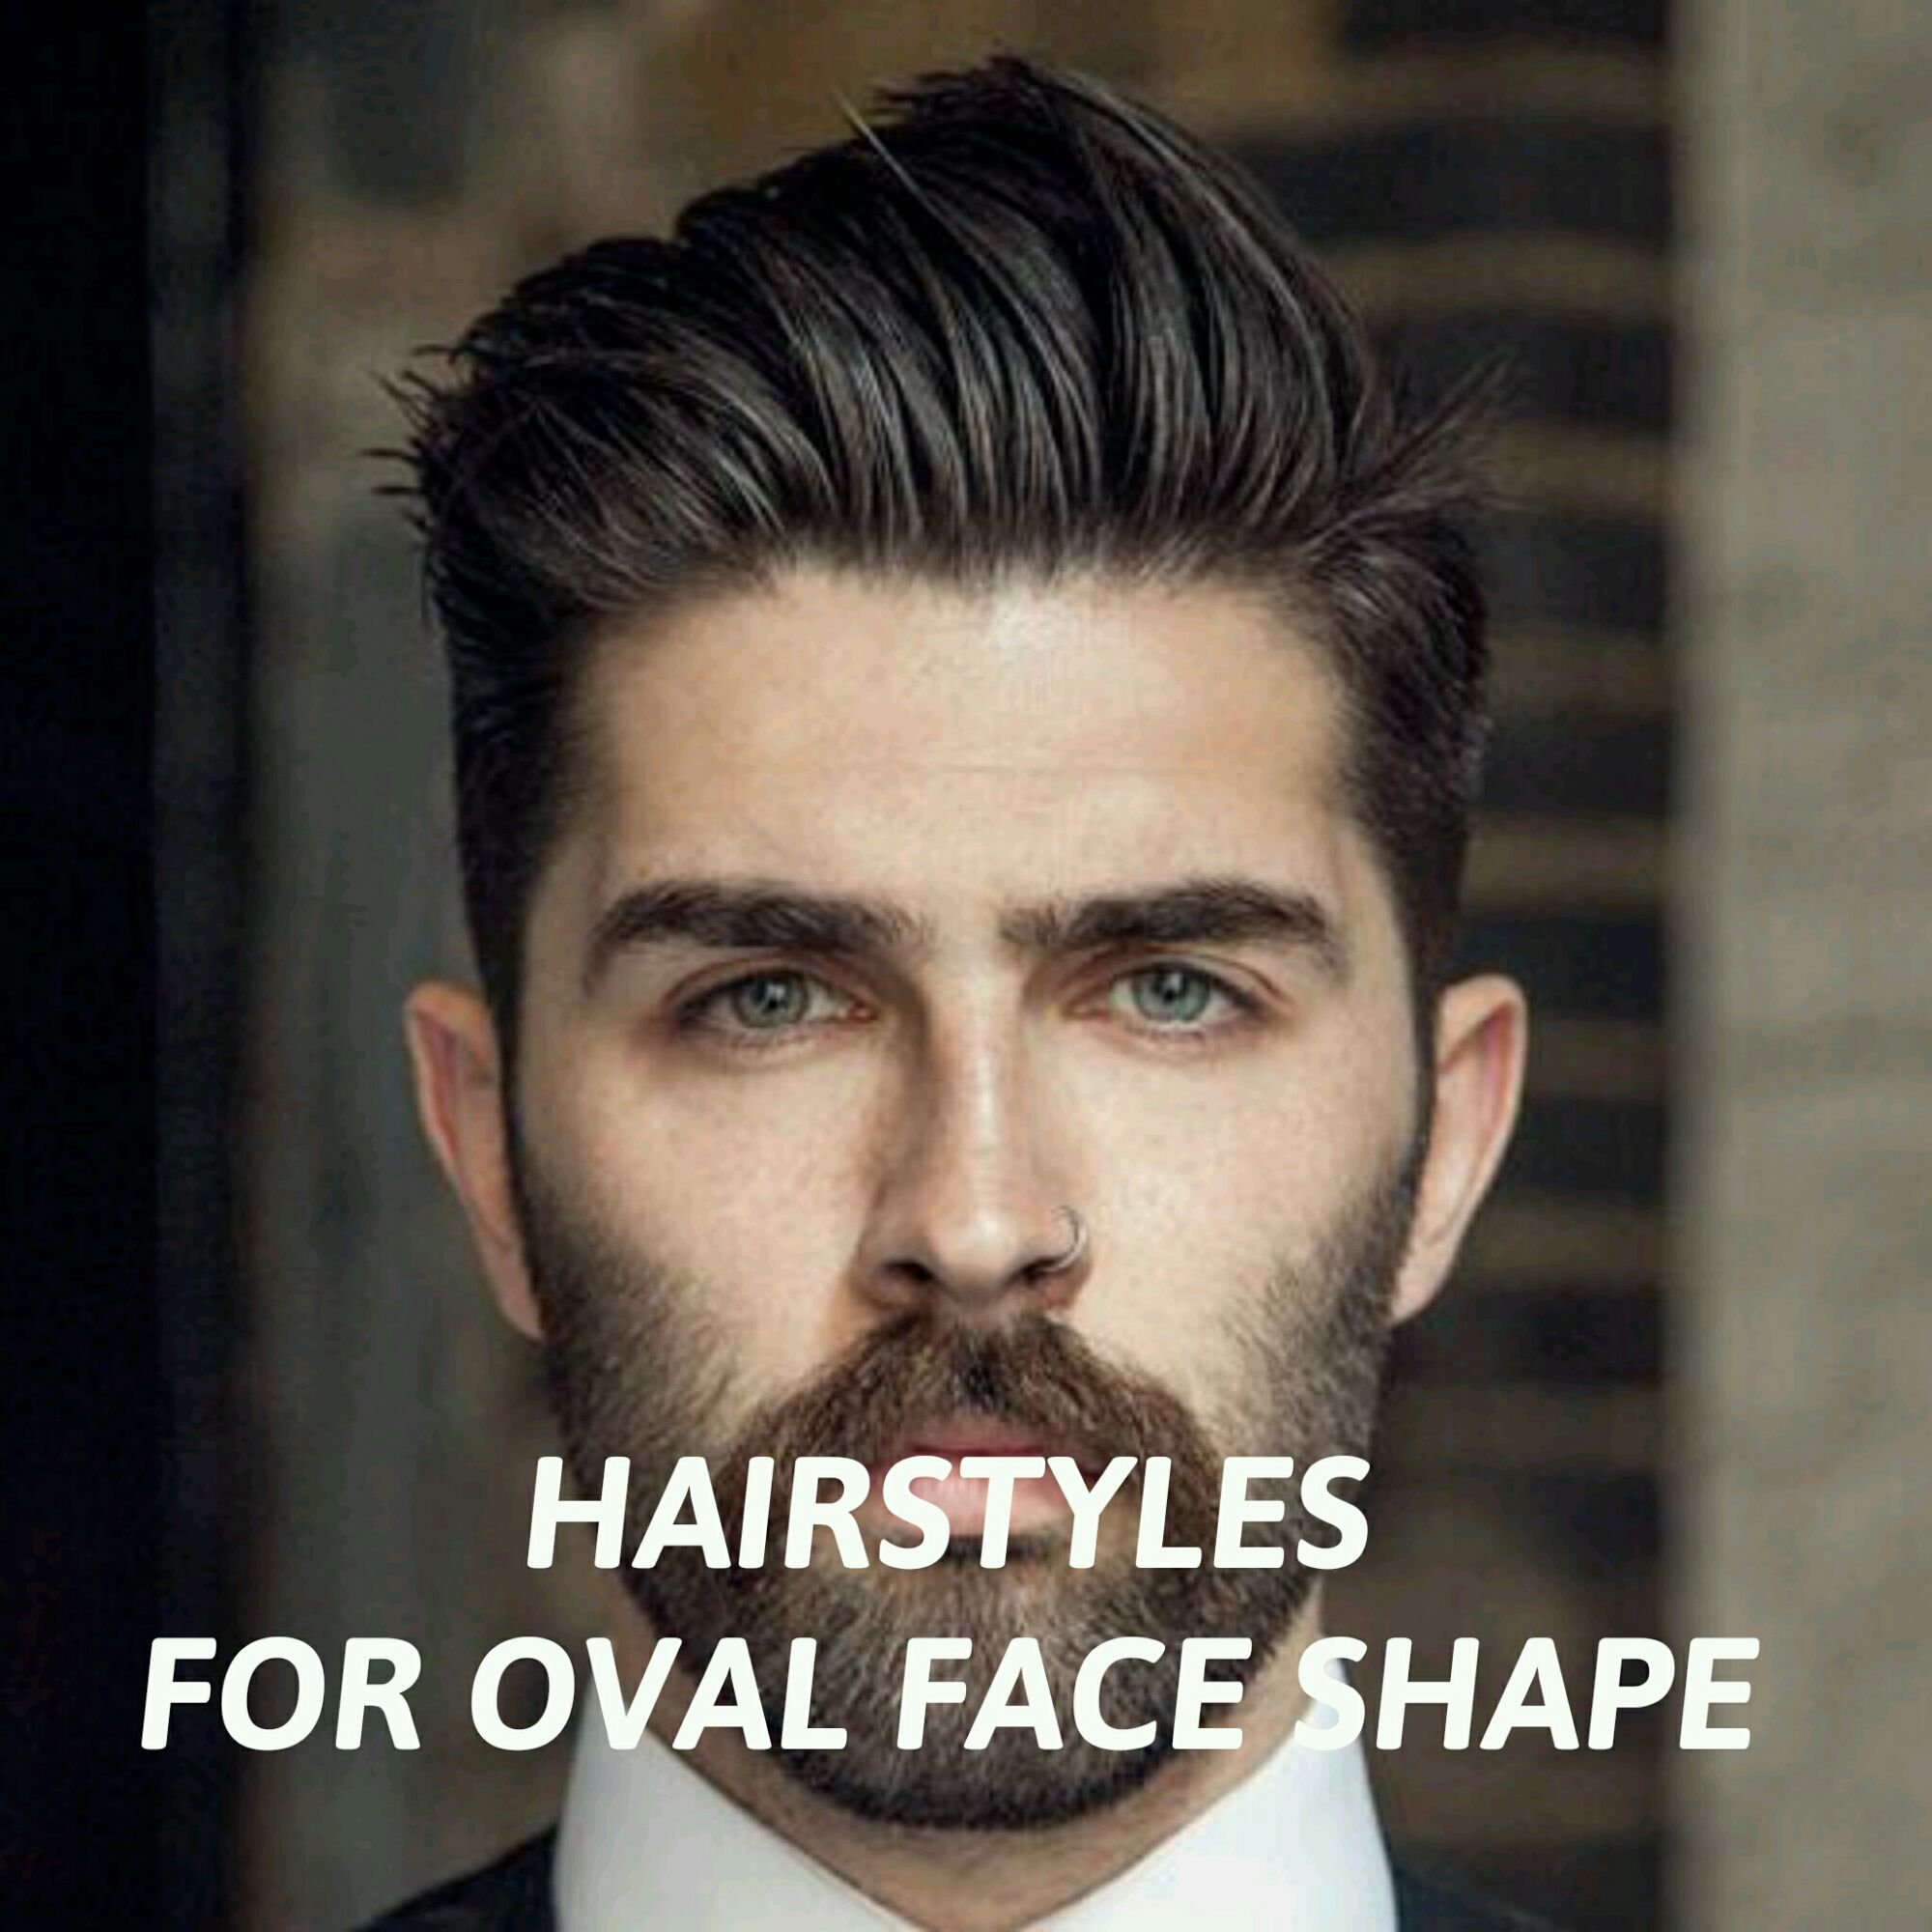 men's hairstyles for oval face shape | men's hairstyles